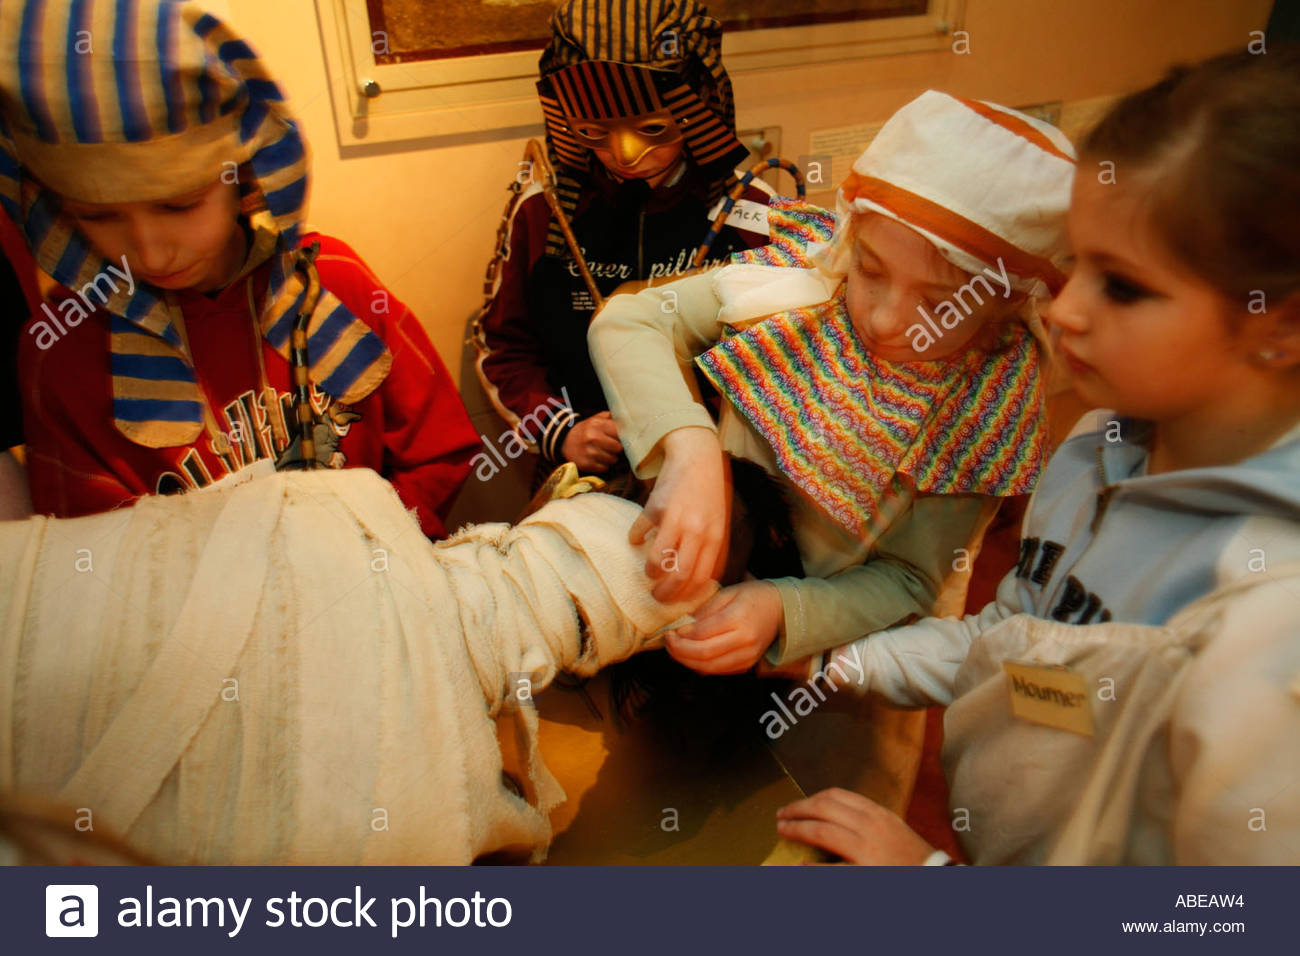 Egypt Centre Swansea (Abertawe), Children recreate embalming at the Egypt Centre at Swansea ...